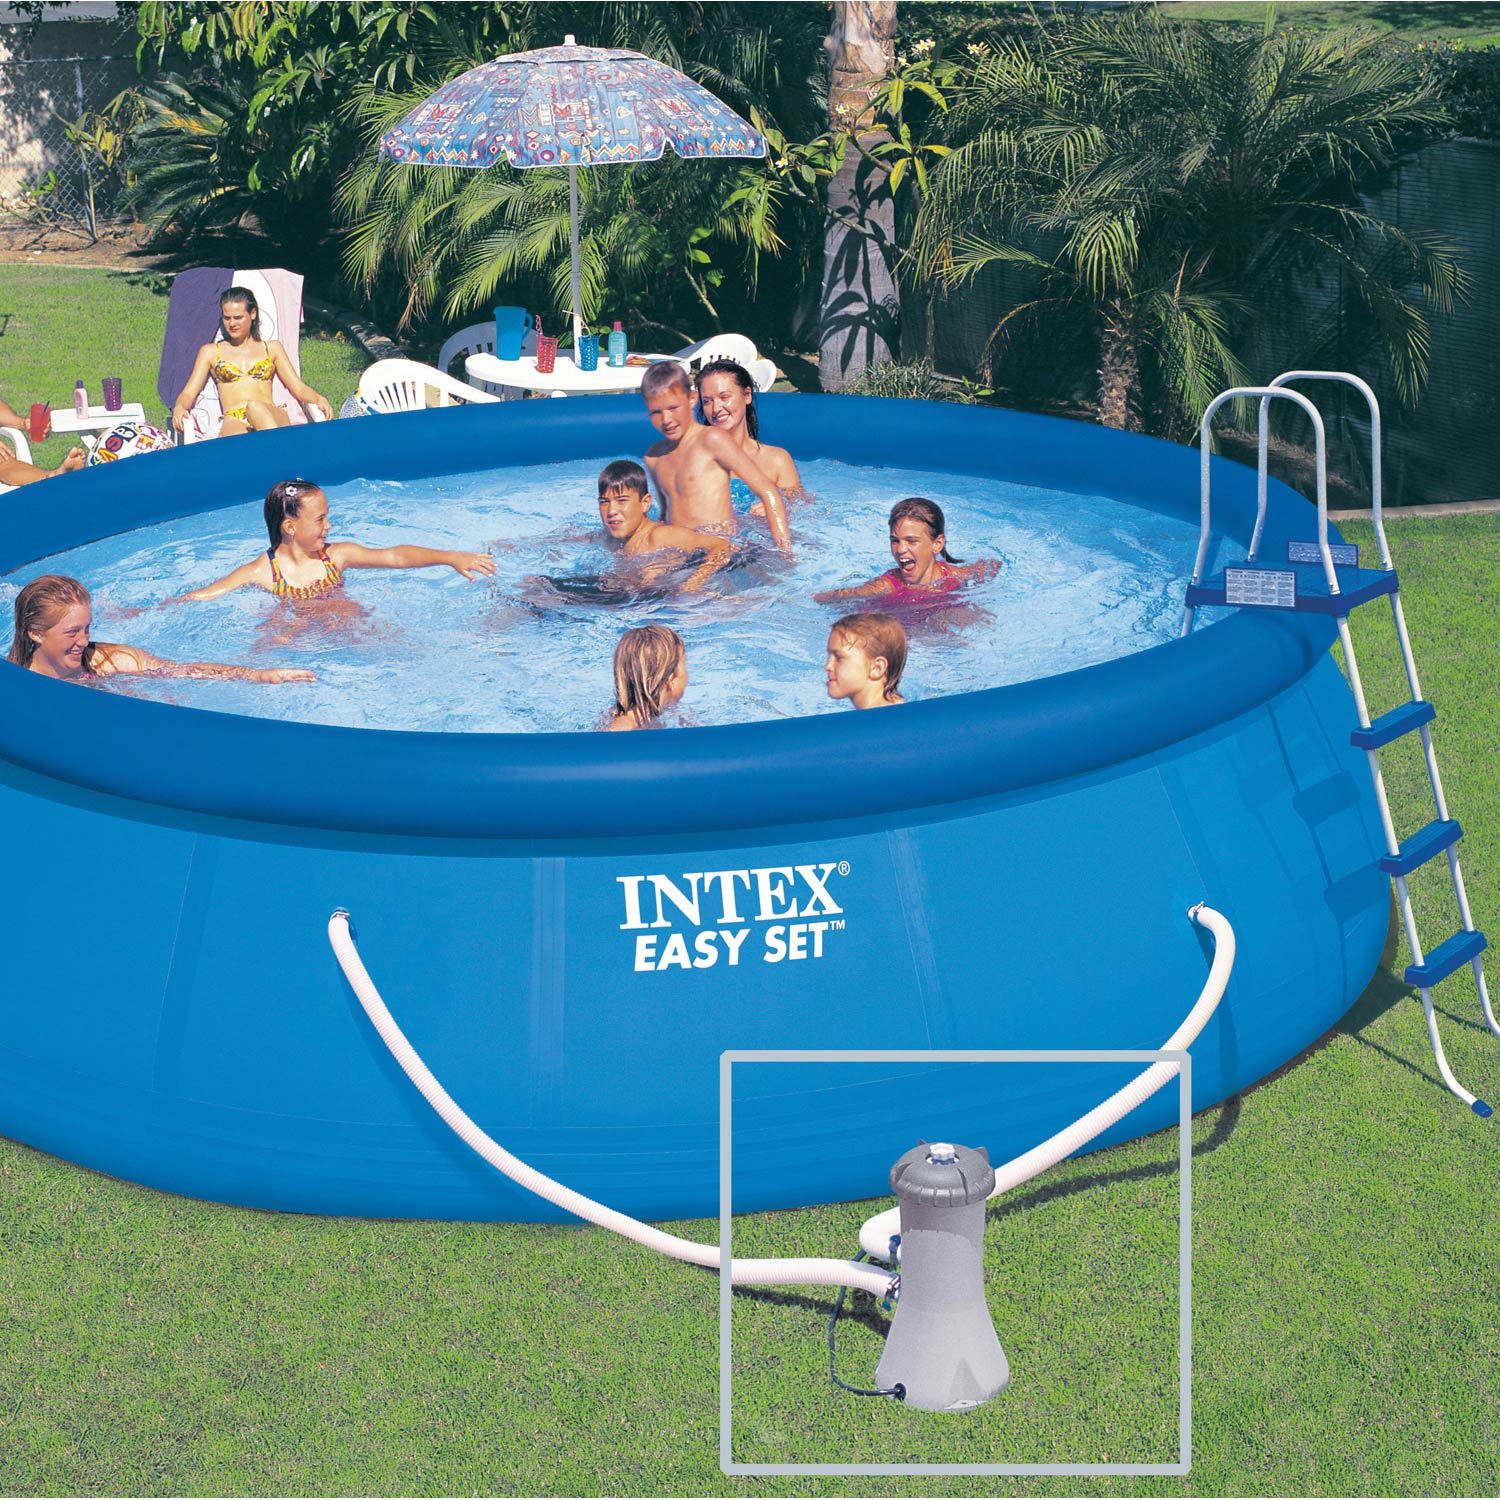 Piscine hors sol autoportante gonflable easy set intex for Piscine hors sol avec toboggan